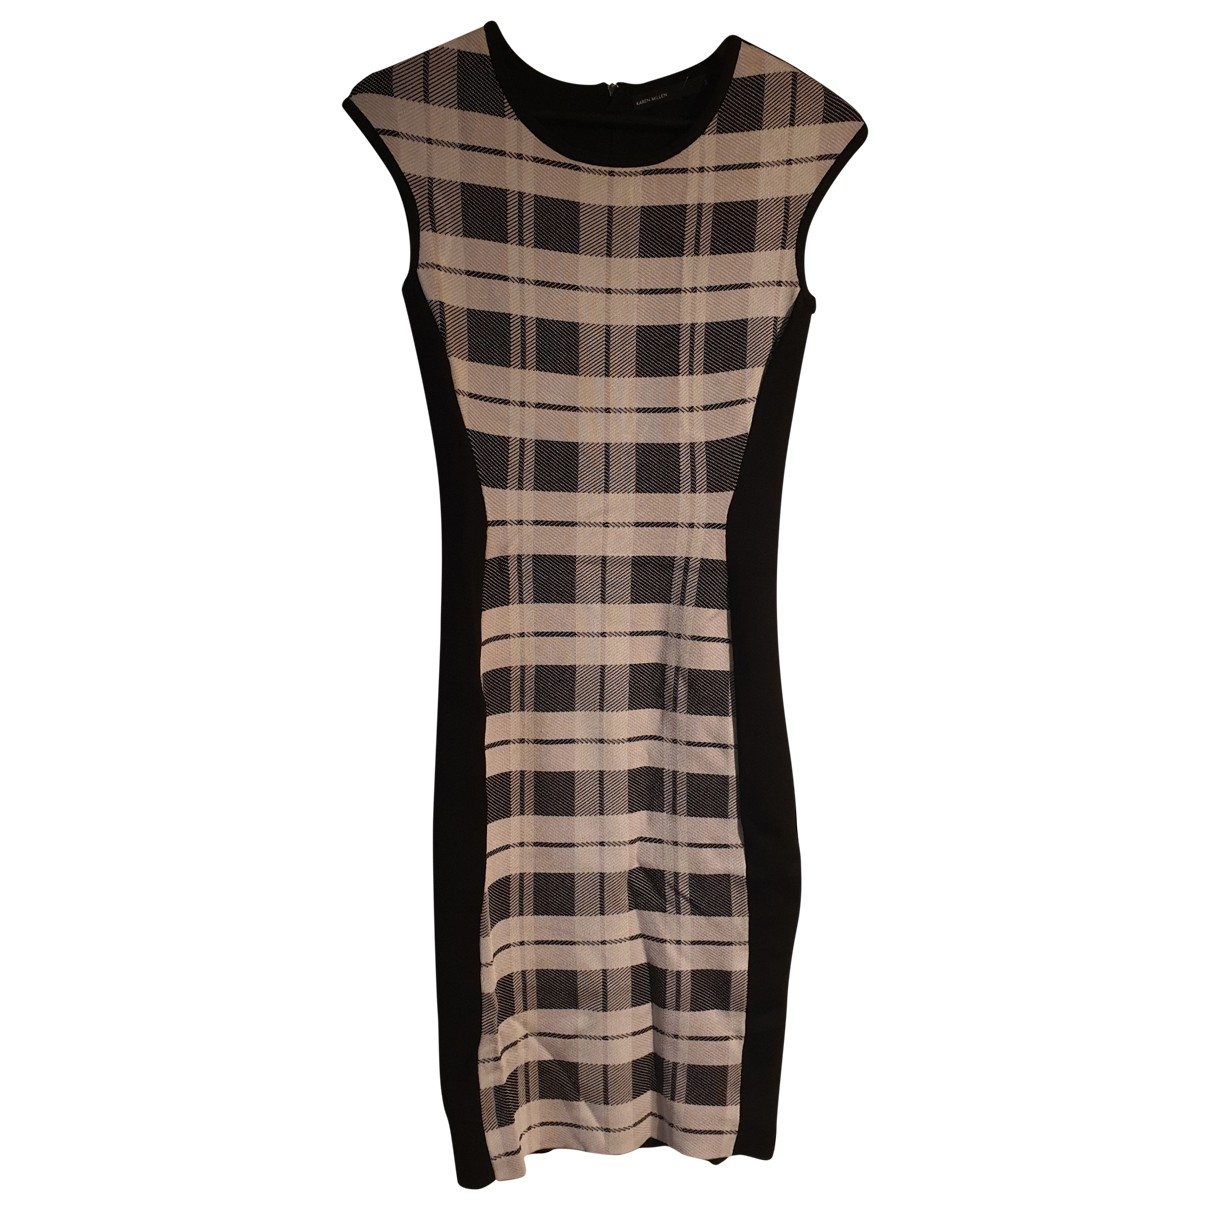 Karen Millen \N Black Cotton - elasthane dress for Women 2 US